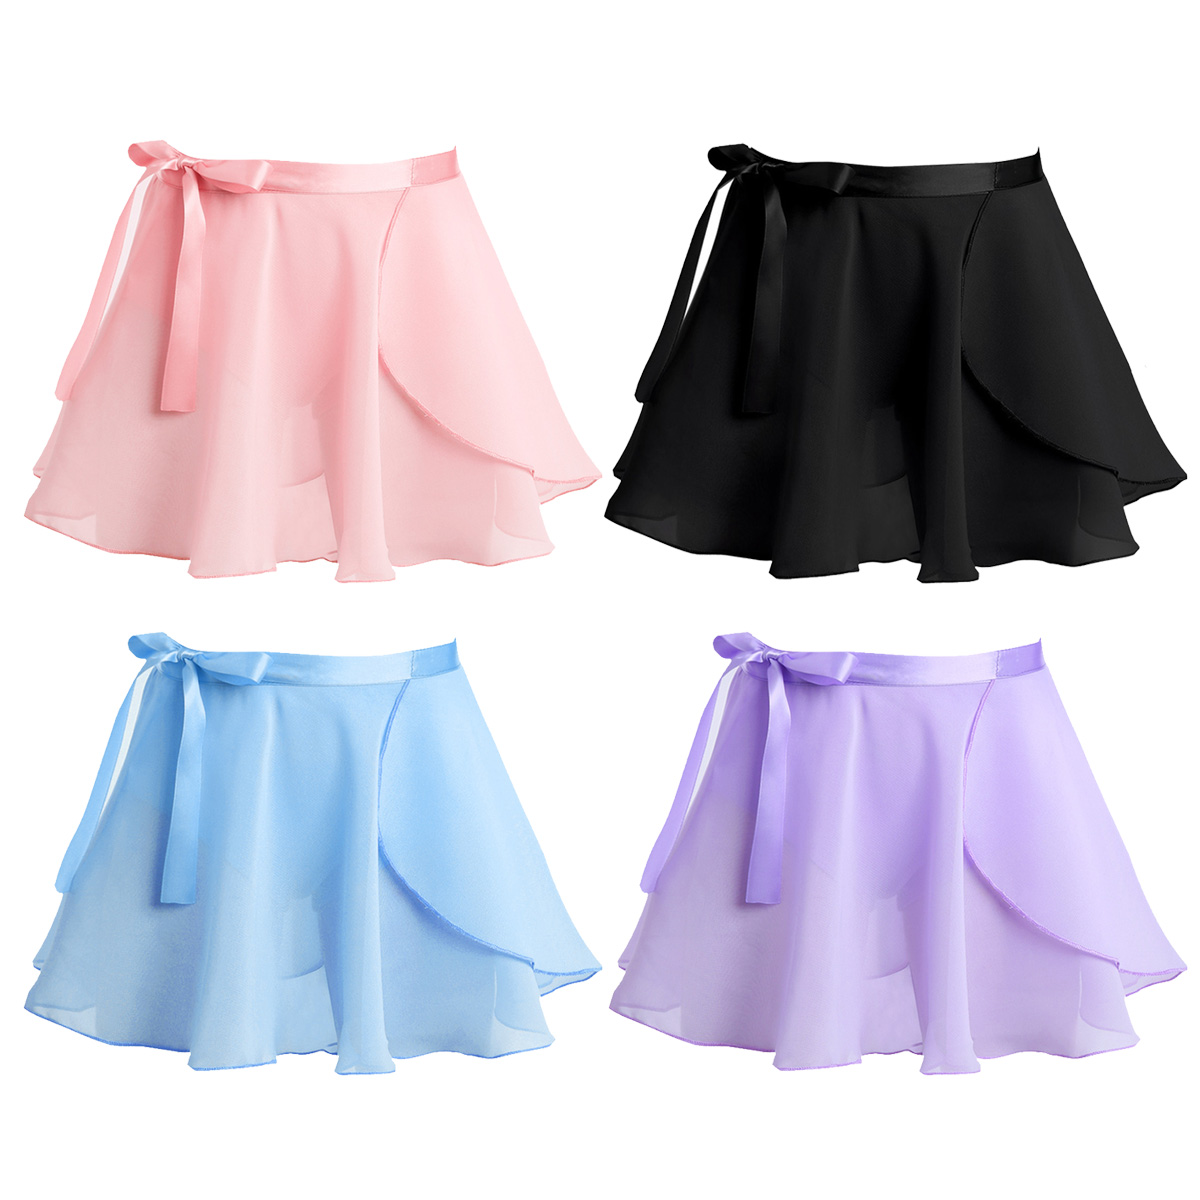 Toddler Kids Girls Dance Basic Chiffon Wrap Skirt Skating Ballet Tutu Dresses